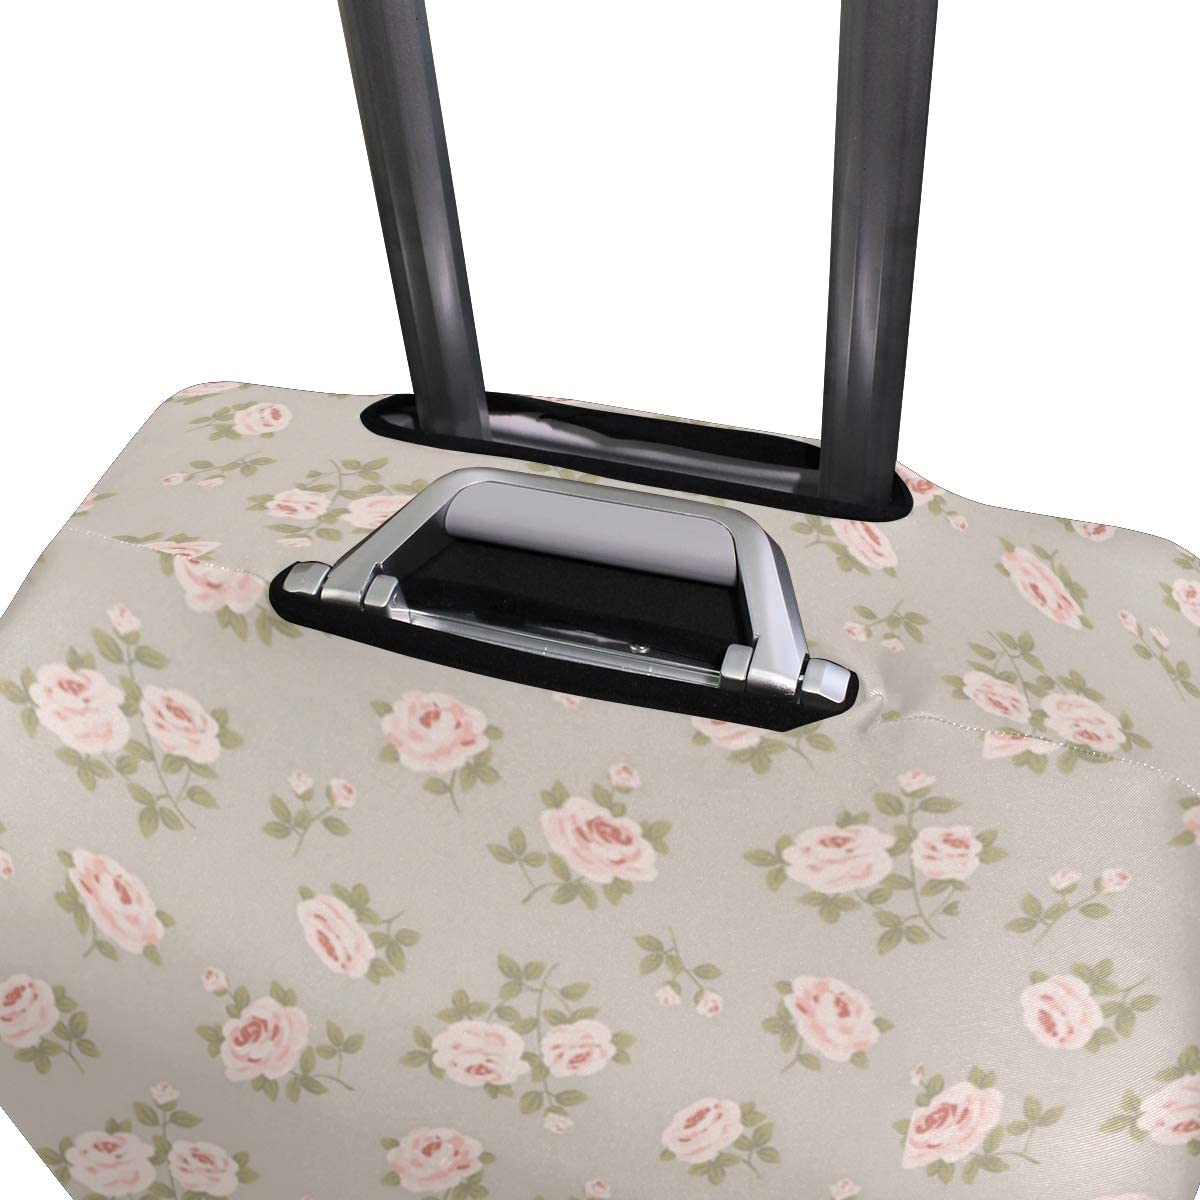 Many Small White Roses Traveler Lightweight Rotating Luggage Protector Case Can Carry With You Can Expand Travel Bag Trolley Rolling Luggage Protector Case